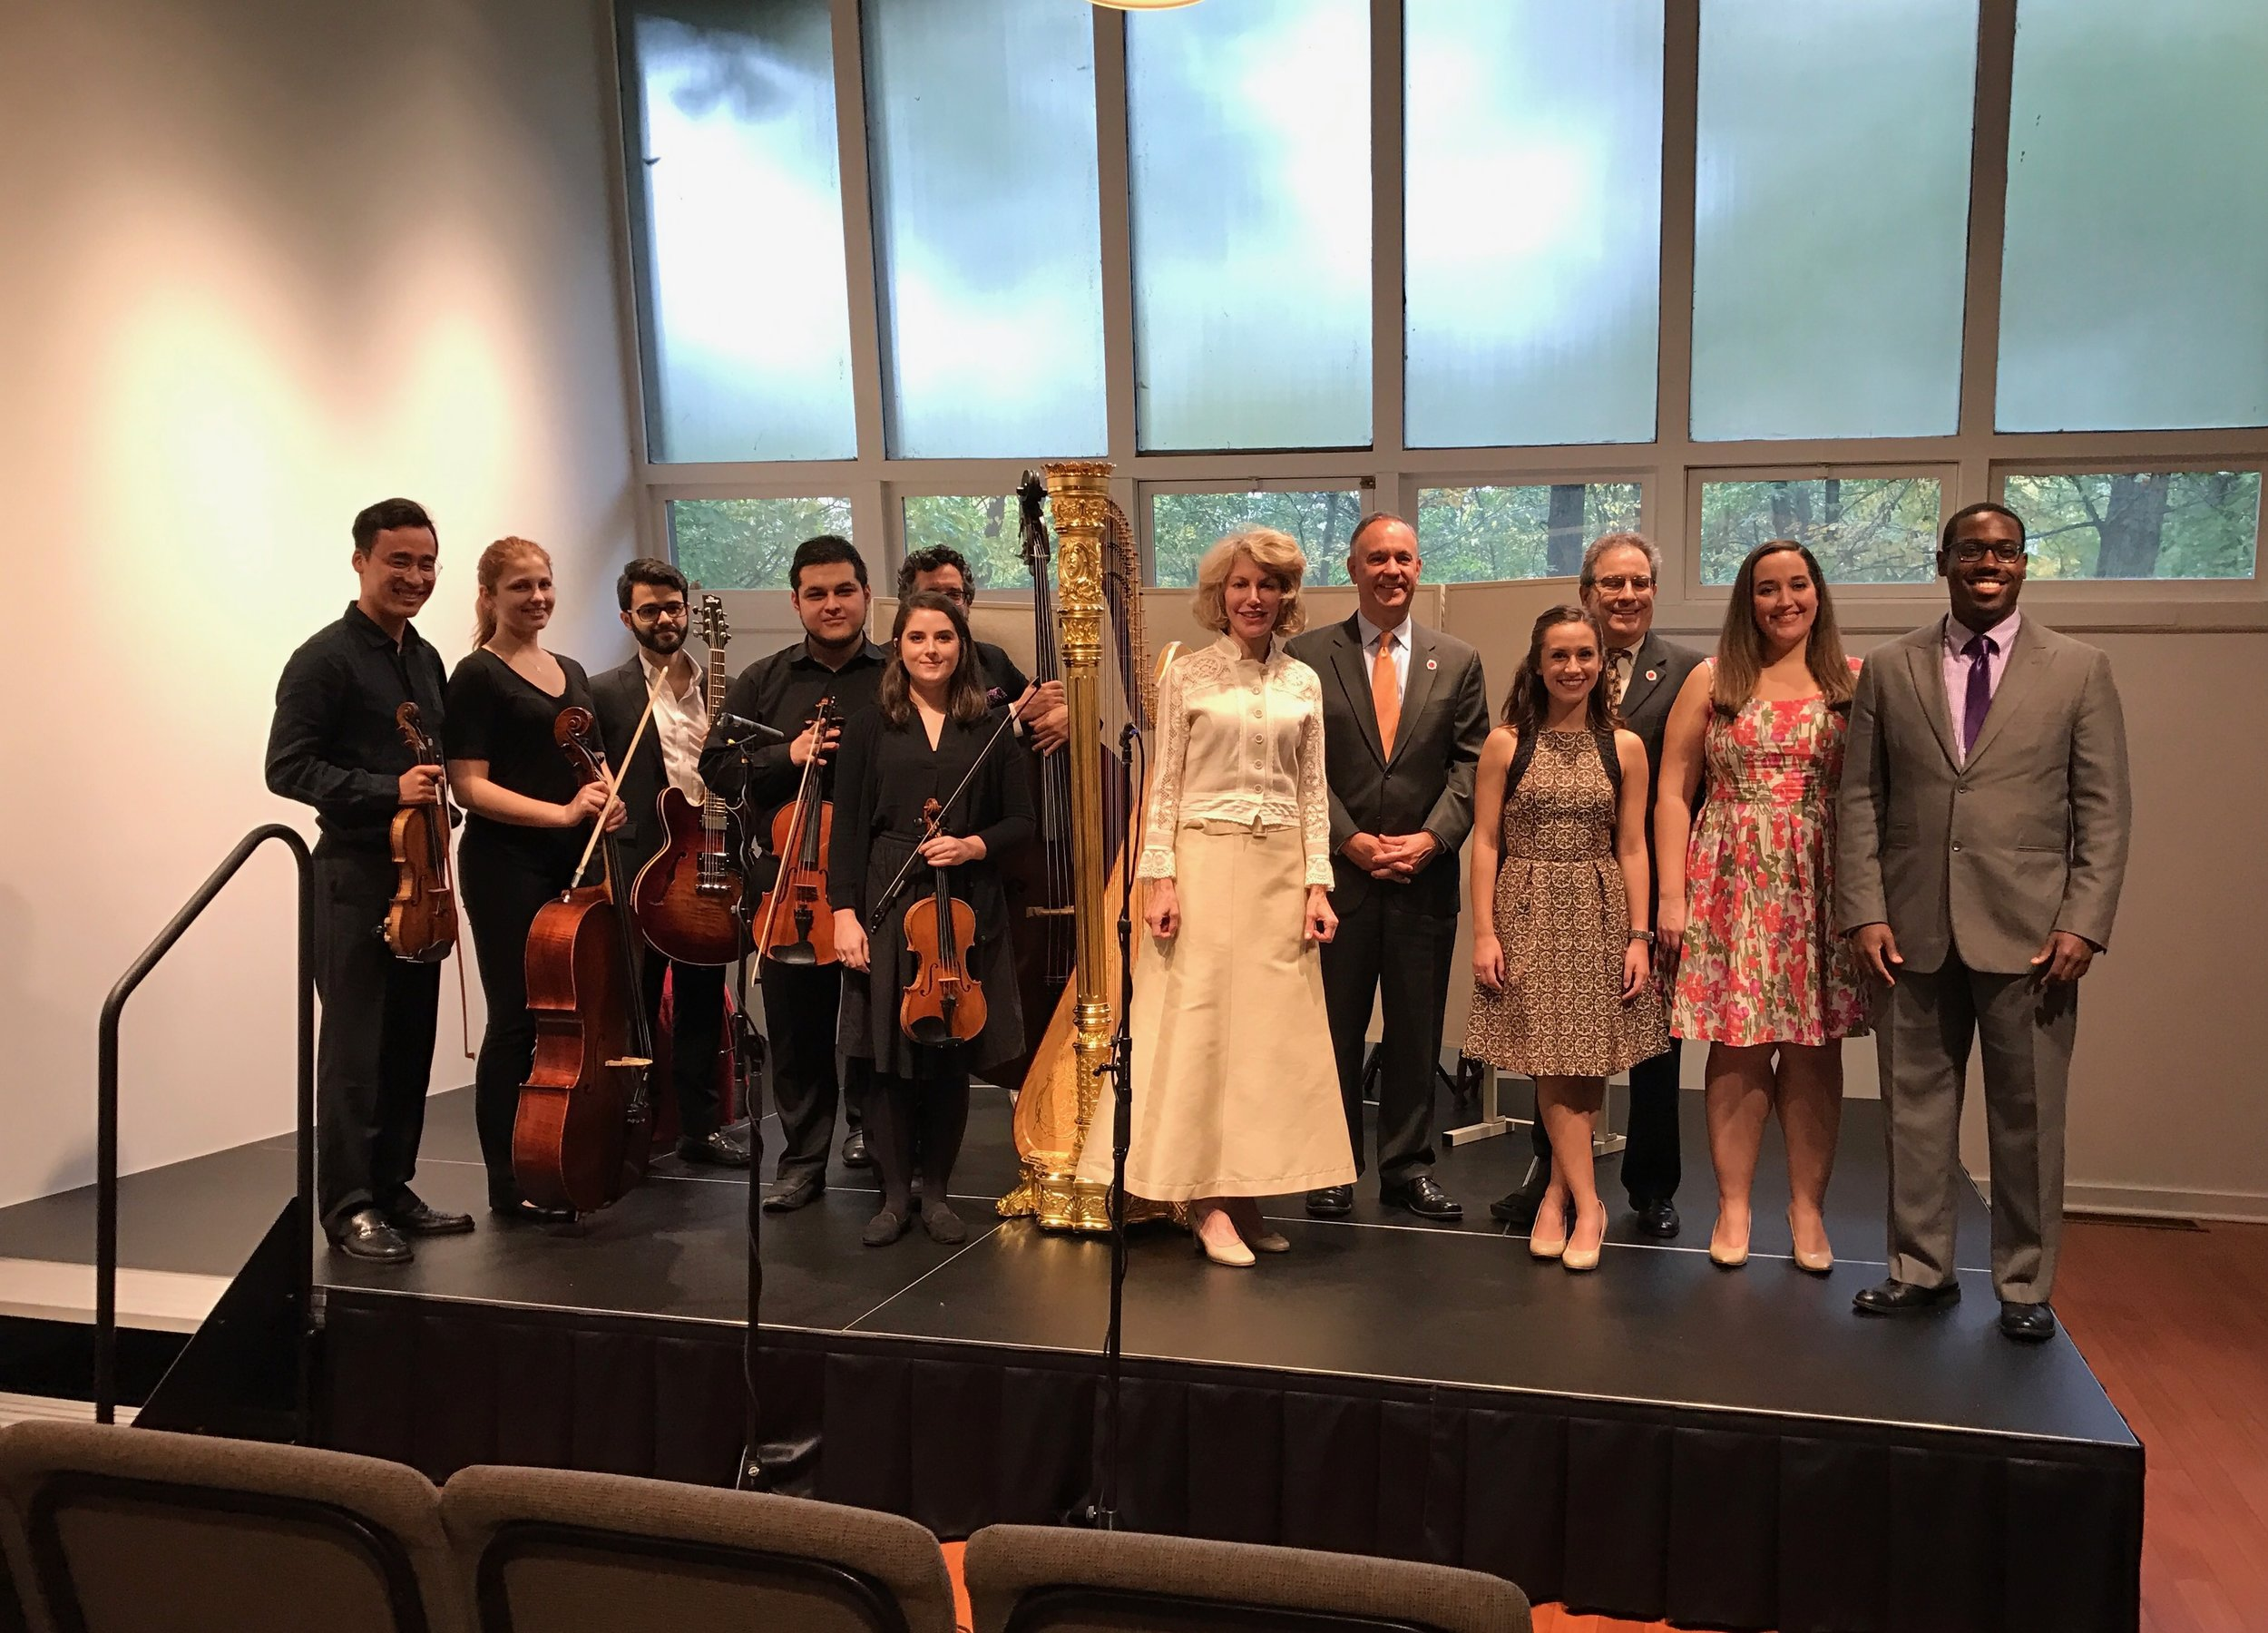 On May 10, guest artist Lisa Tannebaum, founder of the Musical Angel's Program,  captivated the audience in LeFrak Concert Hall with a recital of works by Grandjany, Handel, Spohr, Hasselmans, Rodrigo, and Debussy performed with students from the Aaron Copland School of Music. Last fall she graciously hosted students from the Copland School in her Connecticut studio for a concert and conversation about musical styles ranging from opera to jazz.